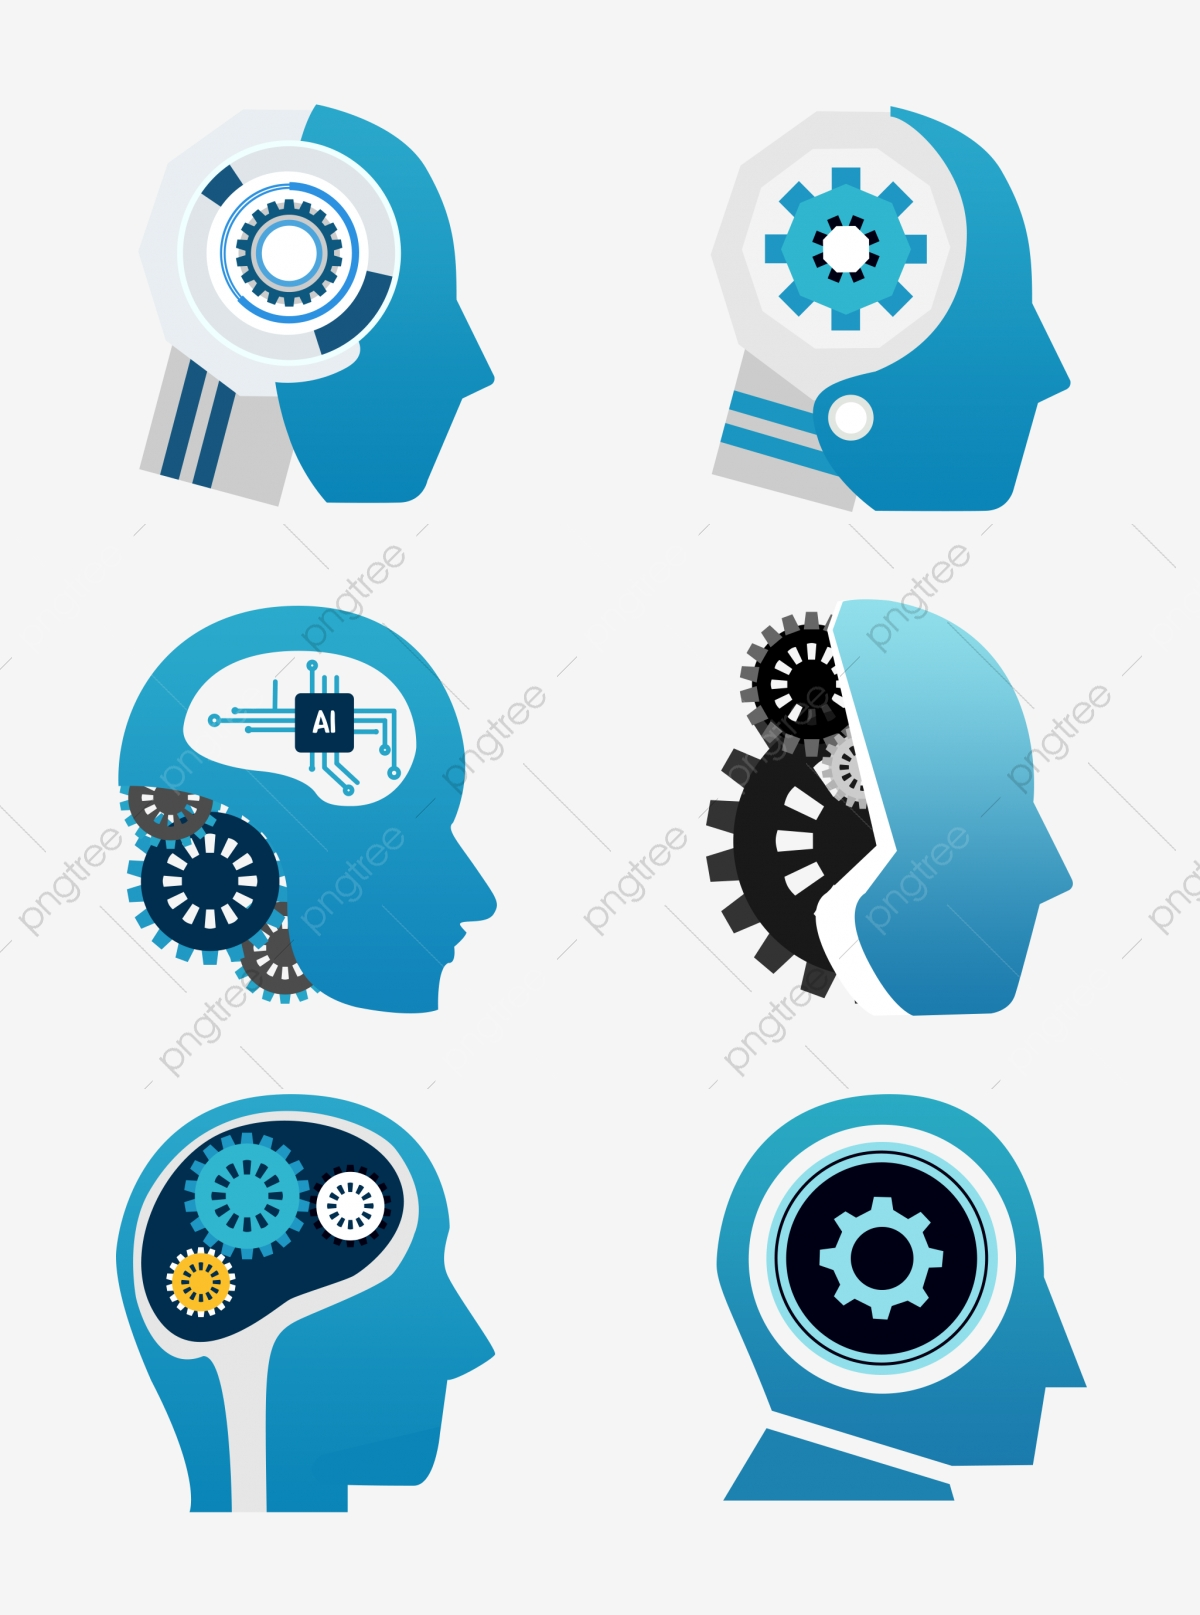 Artificial Intelligence Png : artificial, intelligence, Artificial, Intelligence, Images, Vector, Files, Download, Pngtree